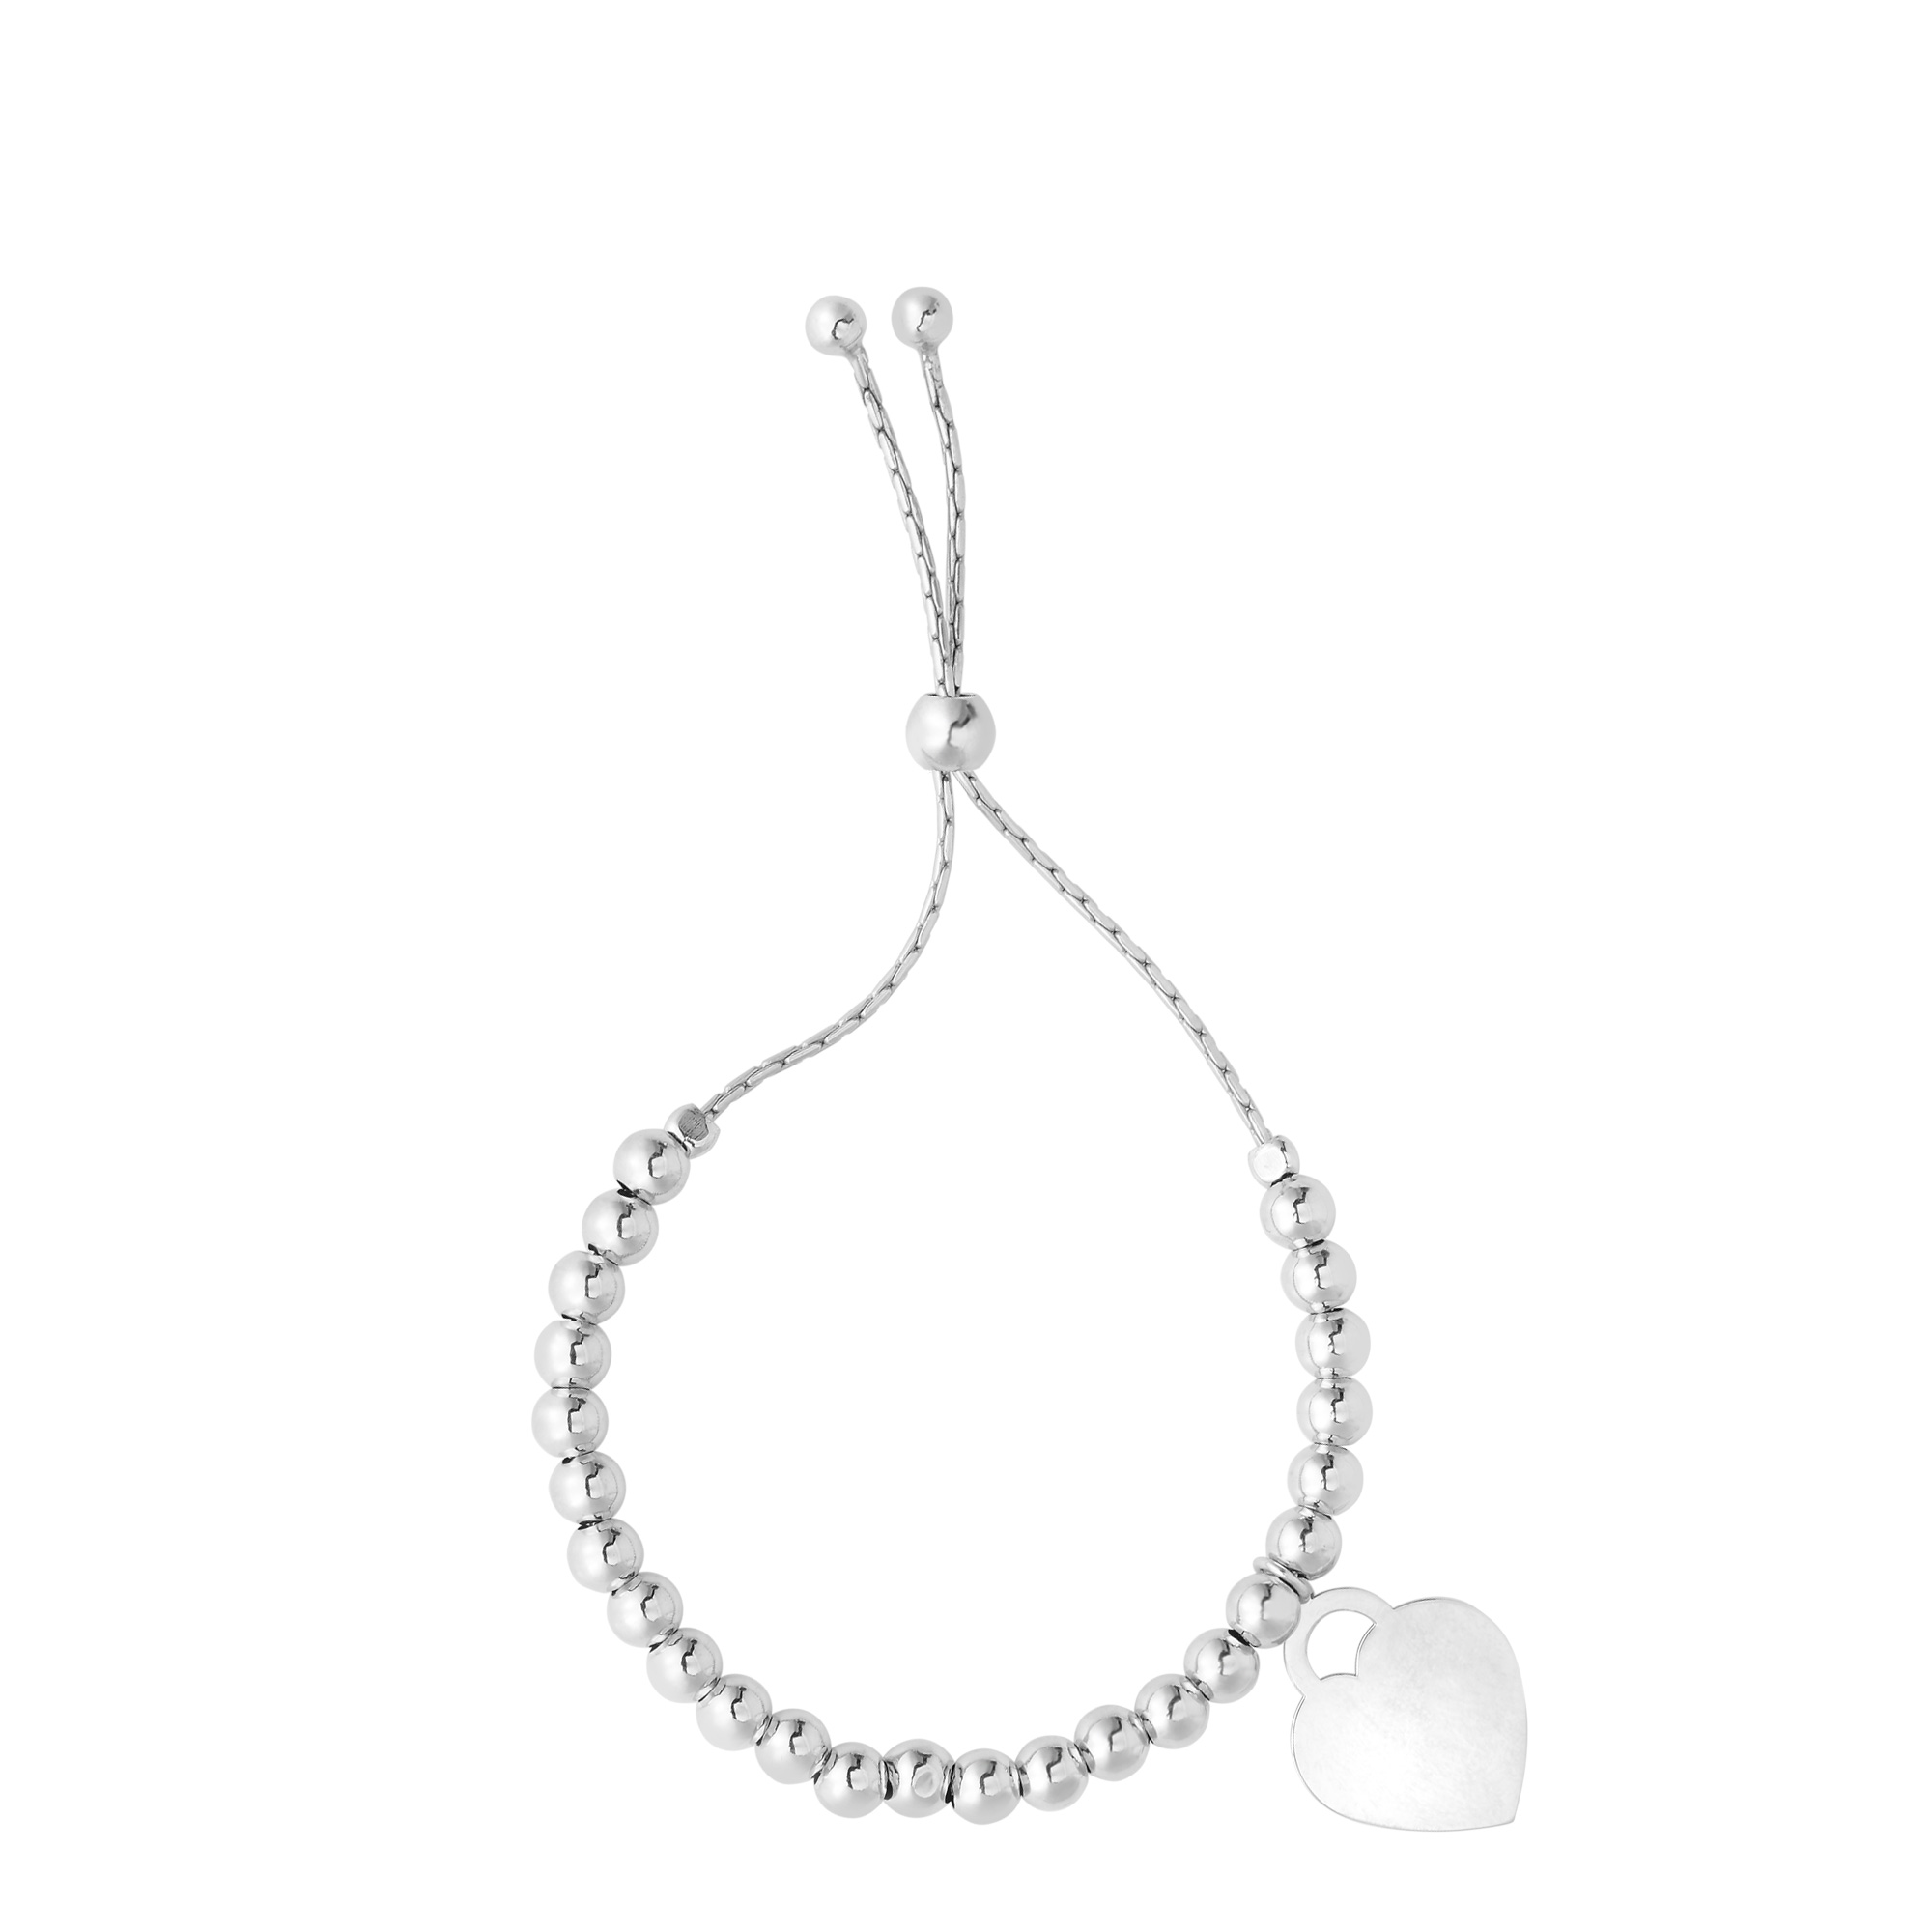 Sterling Silver Beads And Heart Charm Adjustable Bolo Friendship Bracelet , 9.25  Designed for today's fast-moving, contemporary woman, the Friendship bracelets are smart, stylish and easy to wear. Meticulously executed in high quality Rhodium plated sterling silver, these iconic bracelets are easily adjusted to fit any wrist. The Adjustable sliding closure allows you to go from 9.25 inches length to as small as allowed by the design.  Each unique style of our Friendship collection looks beautiful worn as one piece alone or stacked with multiple styles for a layered and modern look. The bracelet comes in an elegant jewelry gift box, perfect for any gift giving occasion.